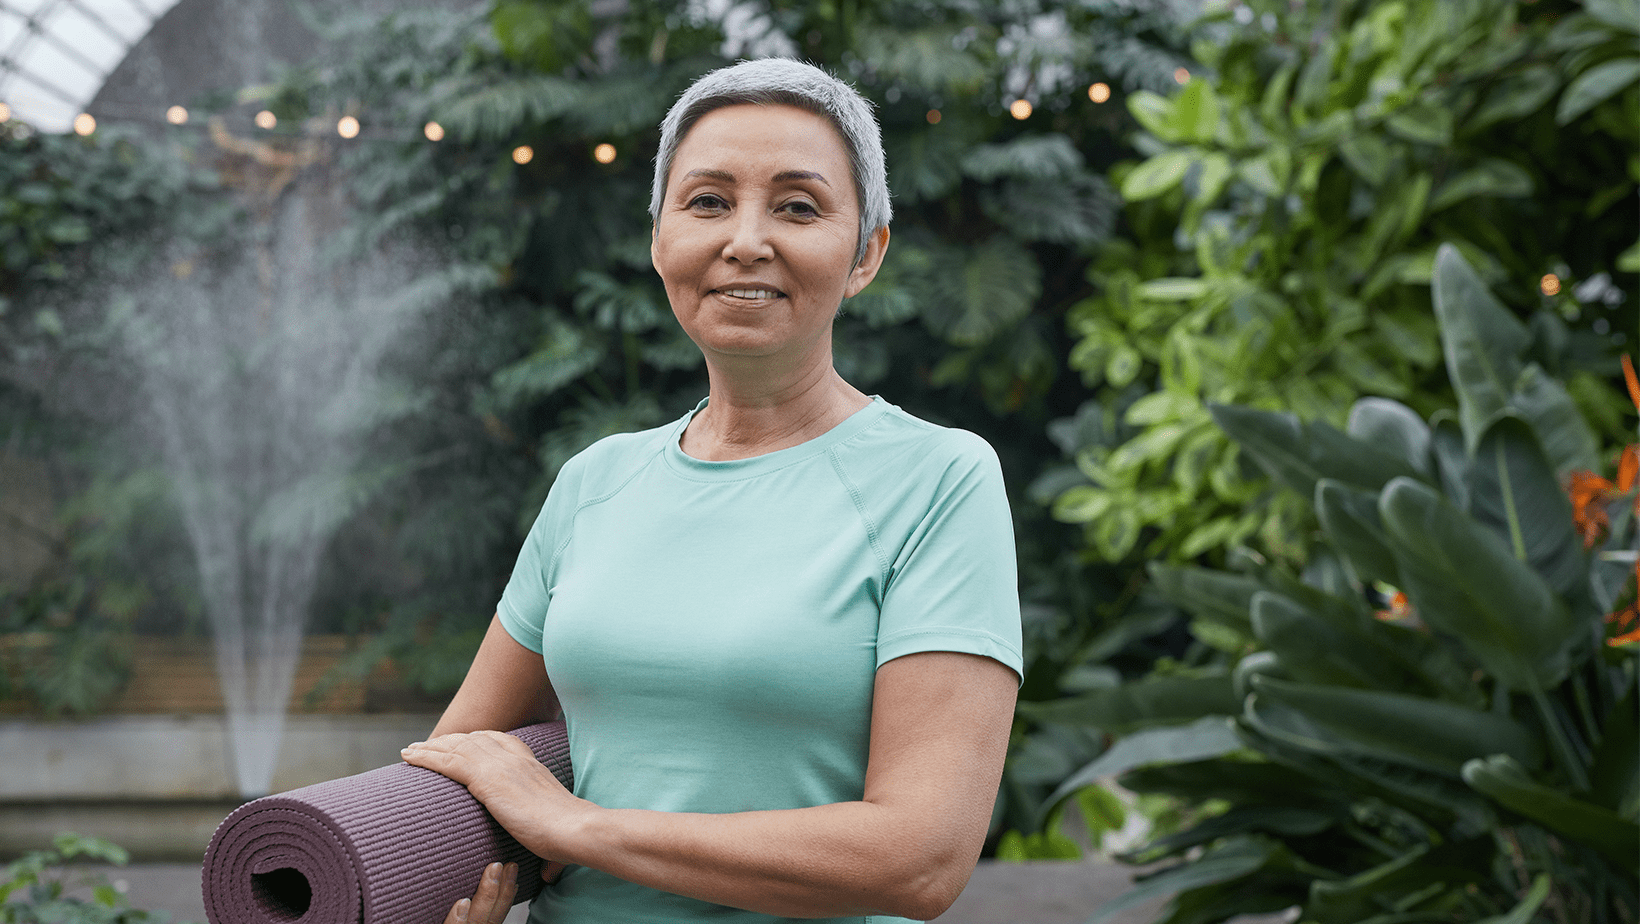 It's Not Easy Being Green in Menopause